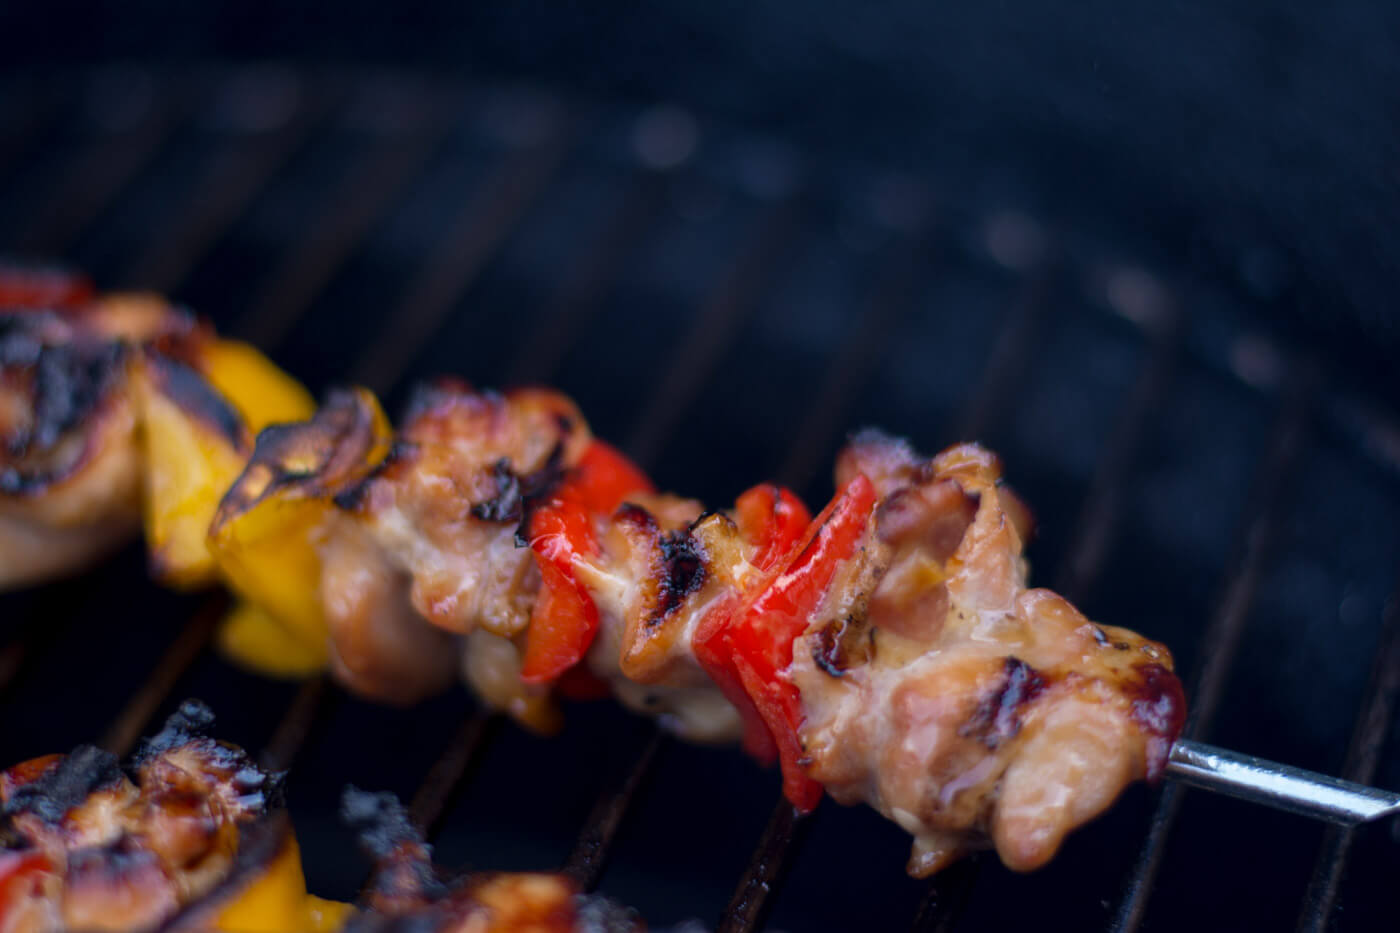 Grilled Honey Chicken Kebabs on the Big Green Egg - Almost Done